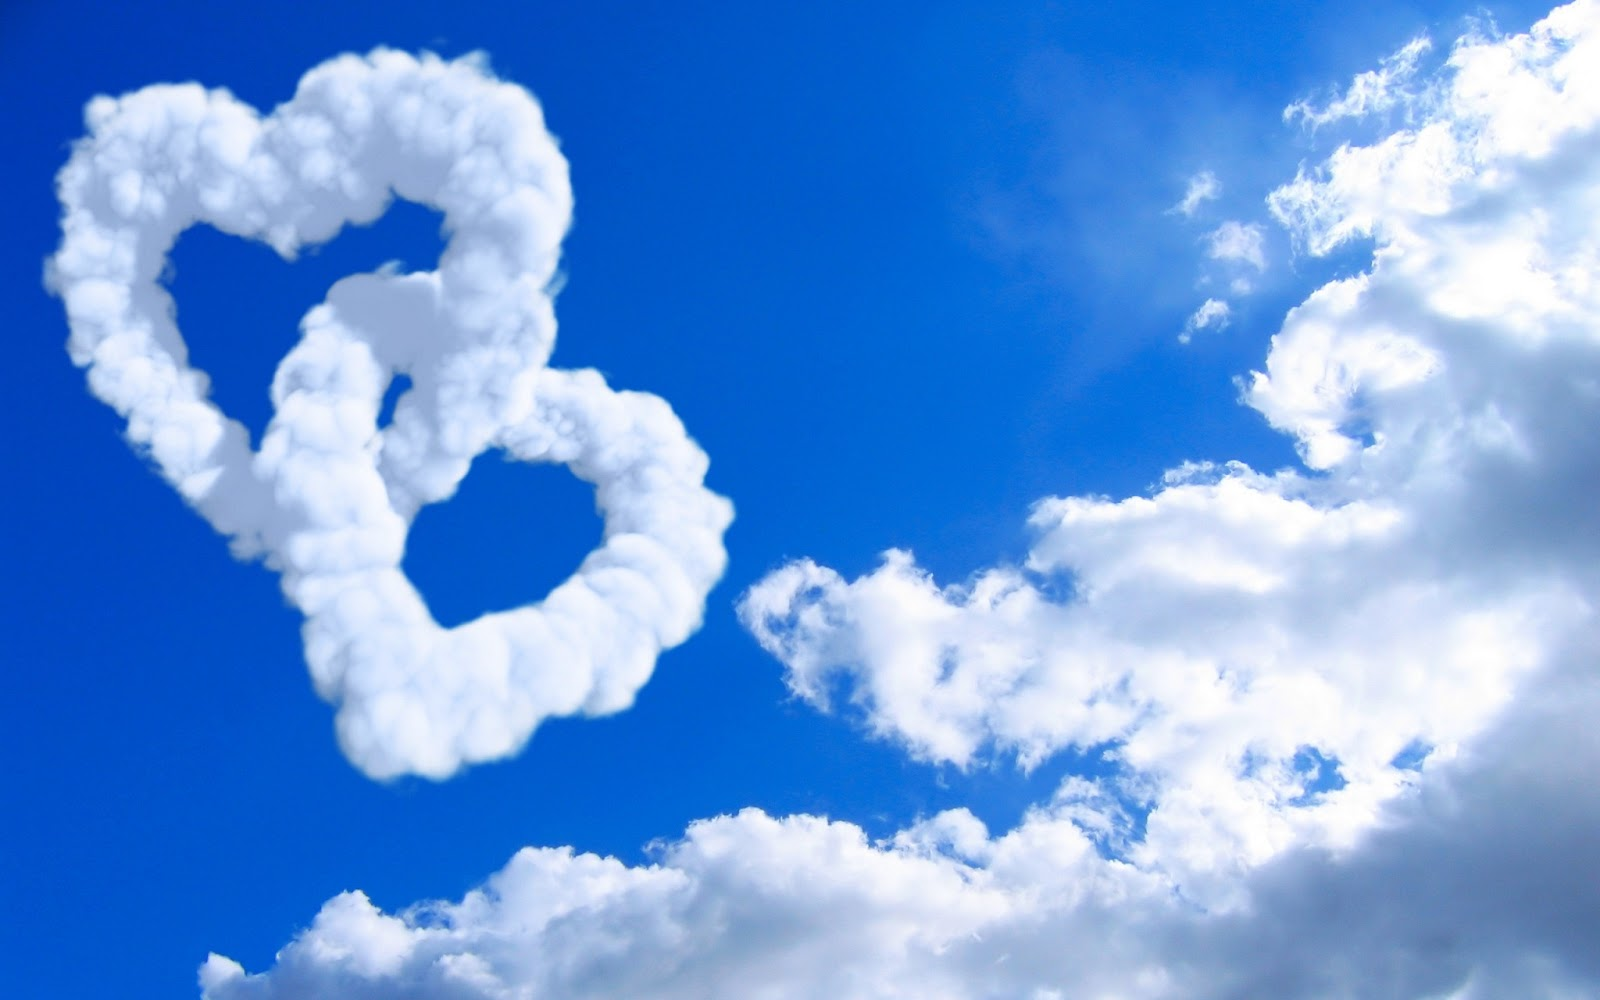 Love Wallpaper 3d Free : 3d love with clouds wallpaper, love wallpapers free Free Stock Photos Web